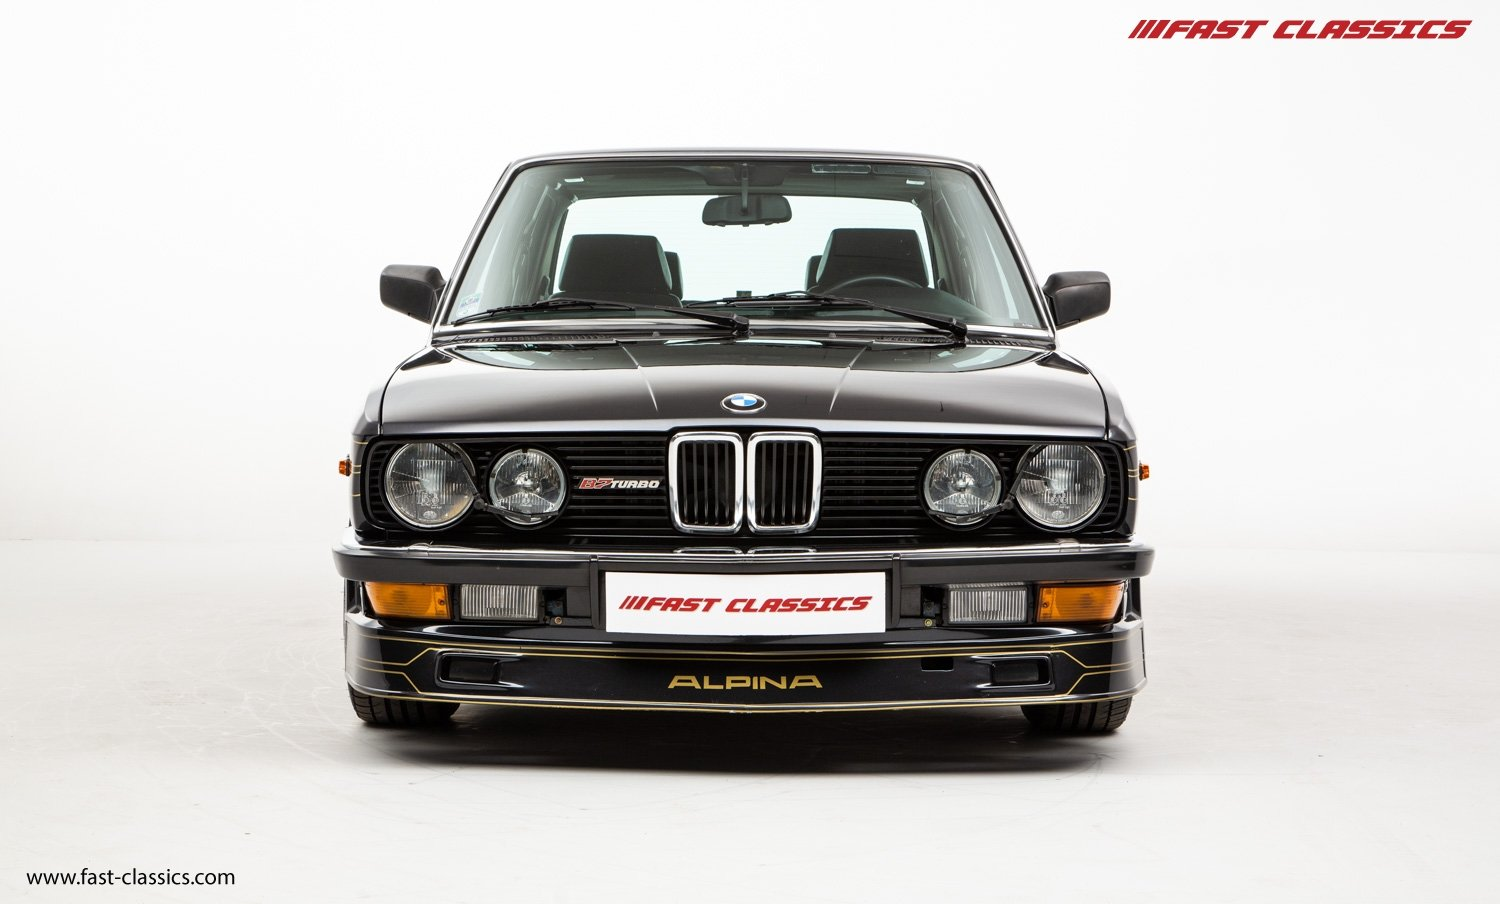 1986 ALPINA B7 TURBO/1 // 1 OF 42 HIGH POWER CATALYST CARS  For Sale (picture 4 of 24)